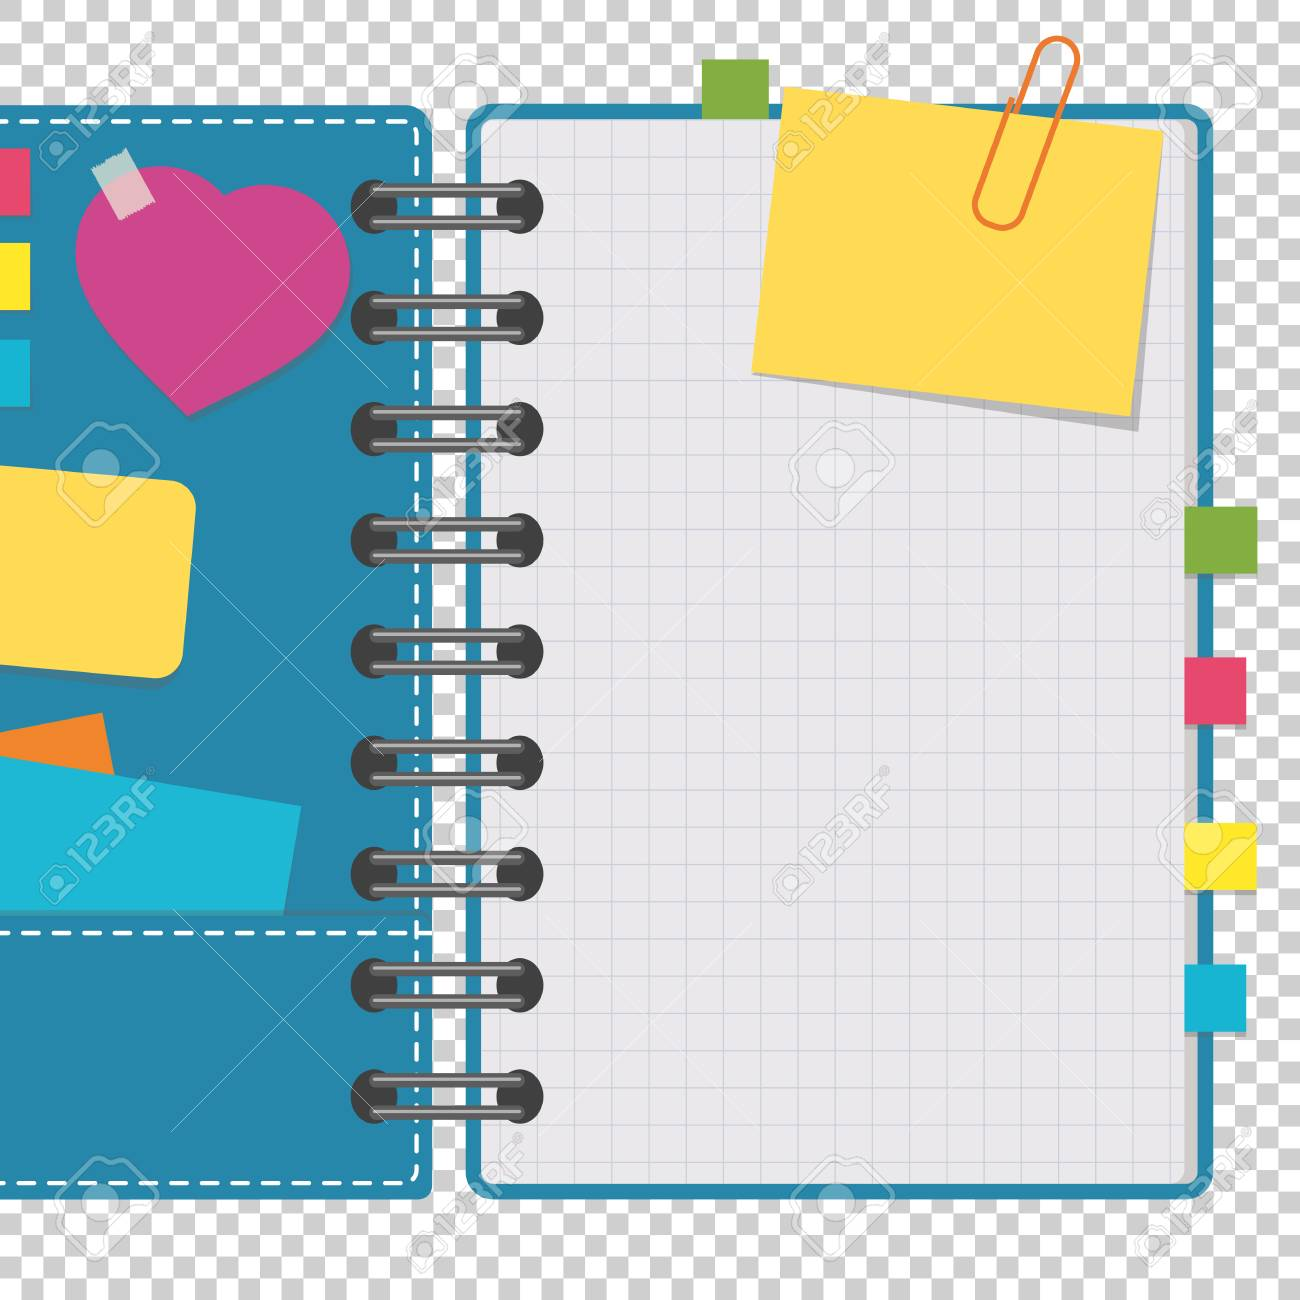 Open notepad with clean sheets on a spiral with bookmarks between the pages. Colorful flat vector illustration isolated on a transparent background. With space for text or image - 99266873